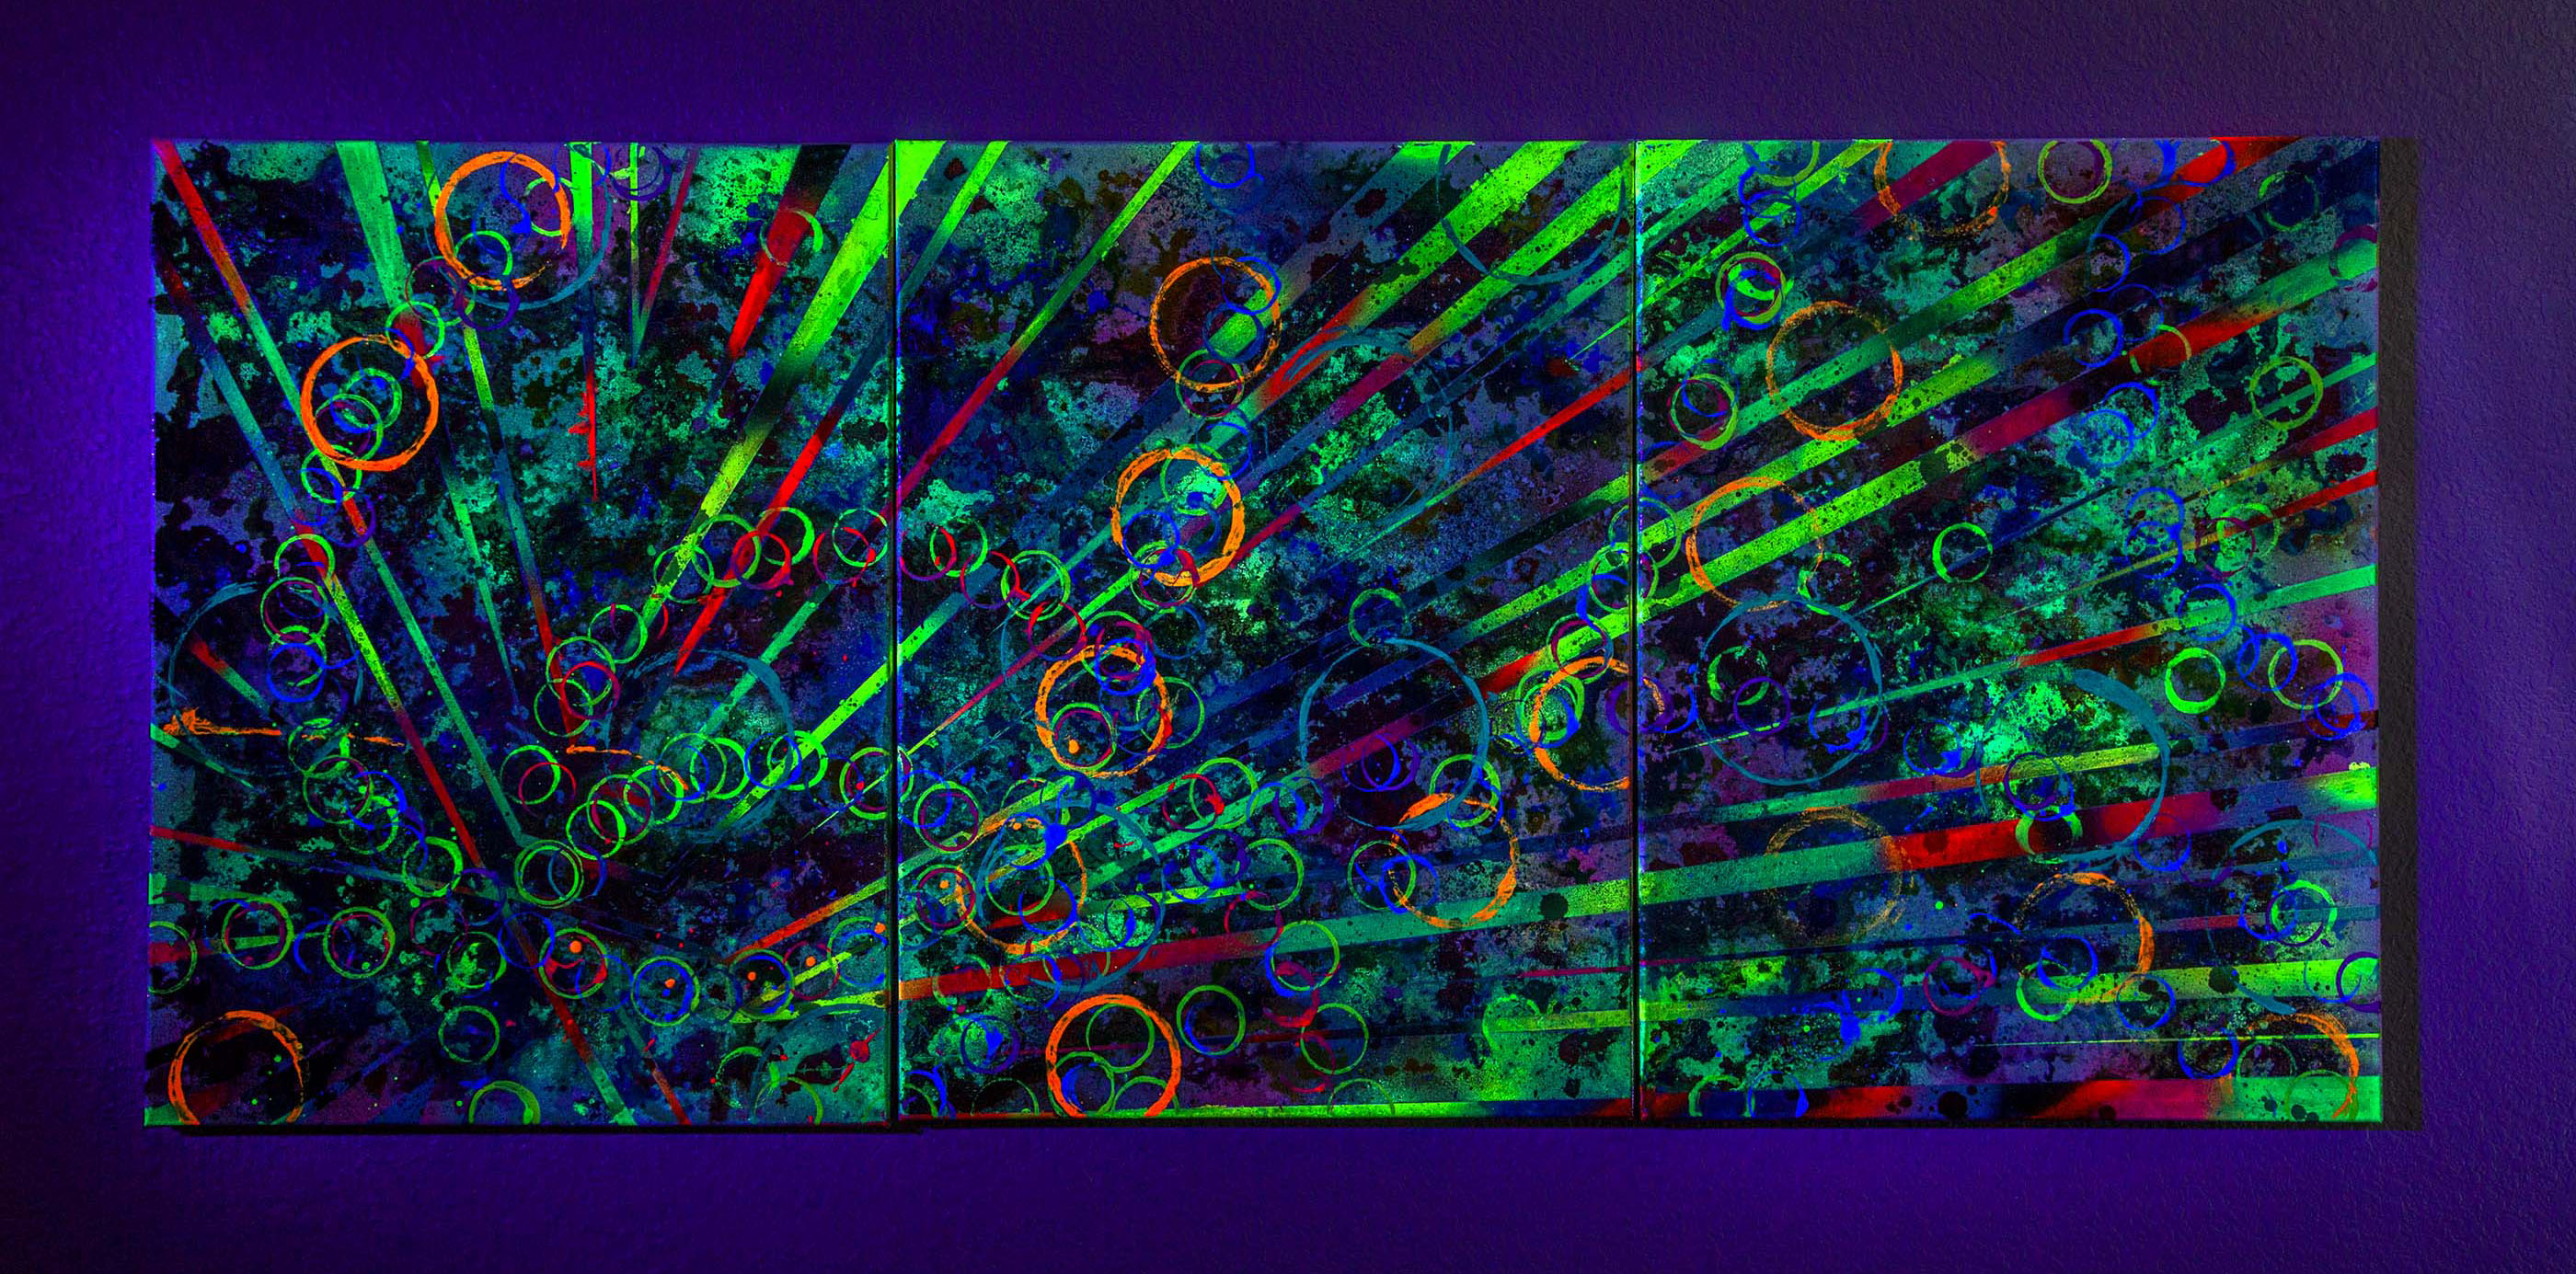 New Beginnings #5 2020. 24x55 inch. Spray Paint, Oil, Acrylic, Soda, Glows in the dark/UV reactive